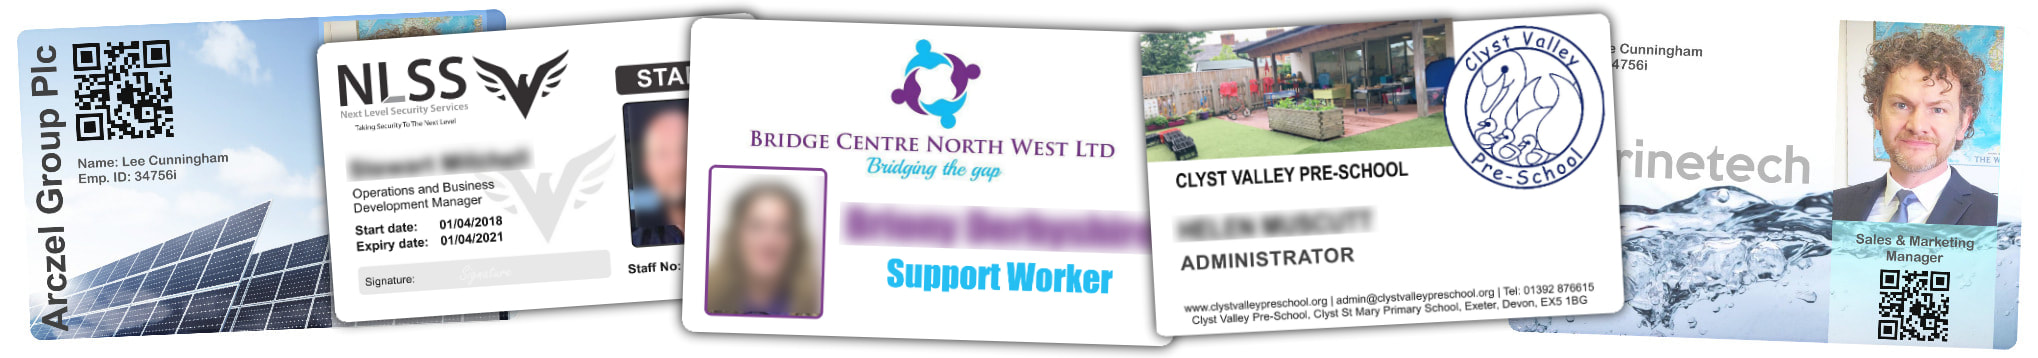 Bolton examples of staff photo ID cards | samples of employee Identity card printing | Workers ID cards printed in Lancashire